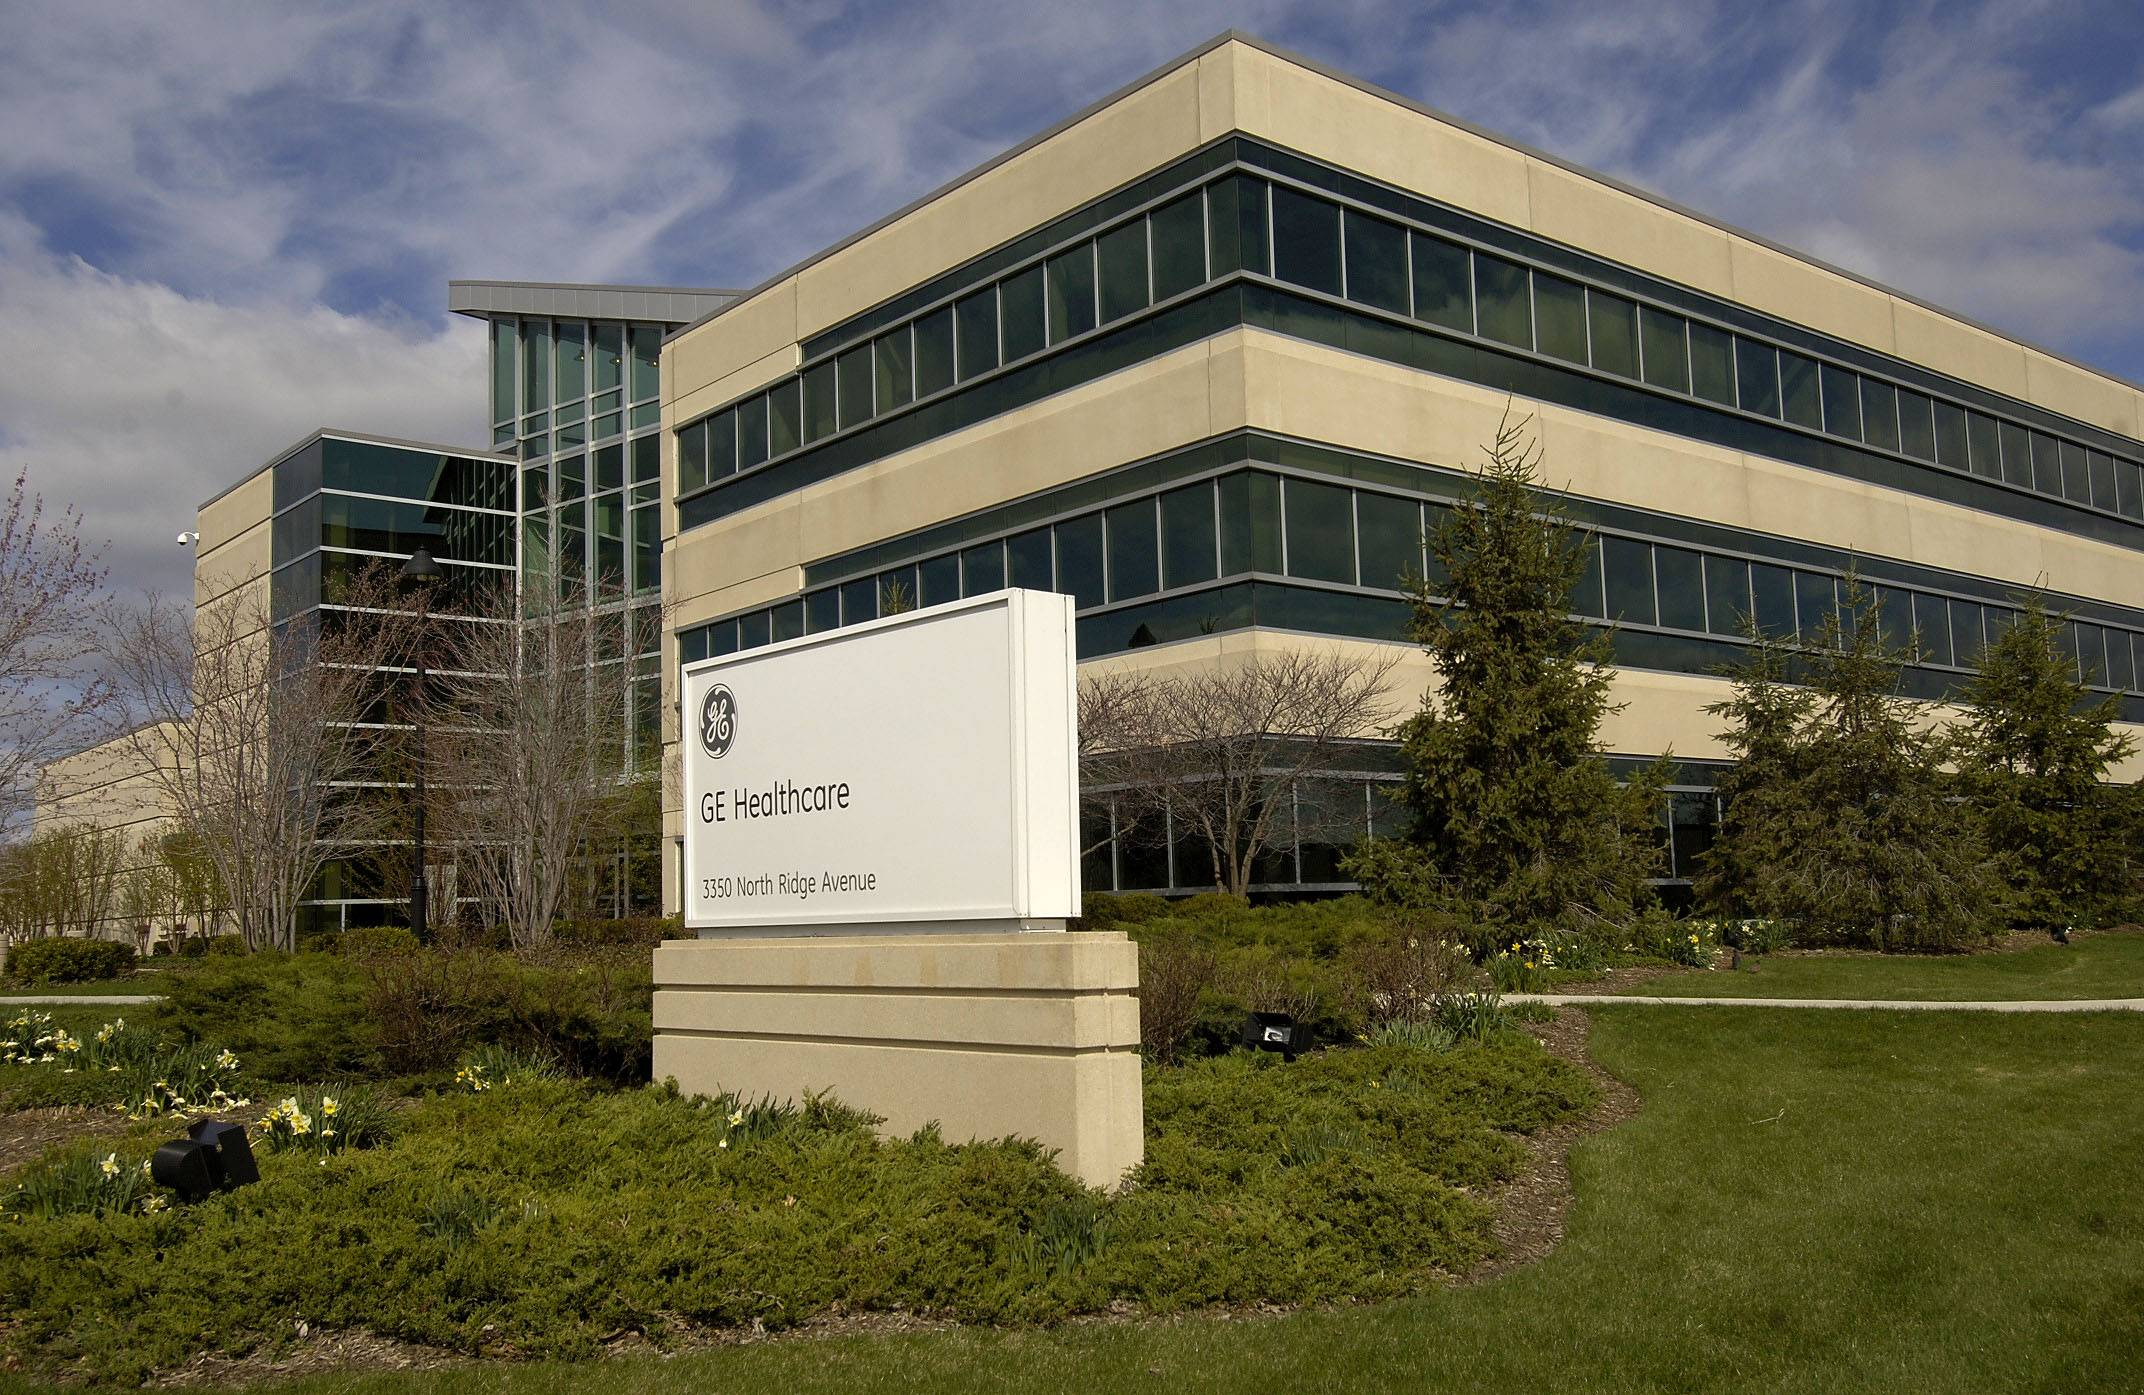 GE Healthcare has offices around the suburbs, such as this Arlington Heights location. Its Barrington office will end its lease in Barrington by the end of the year.